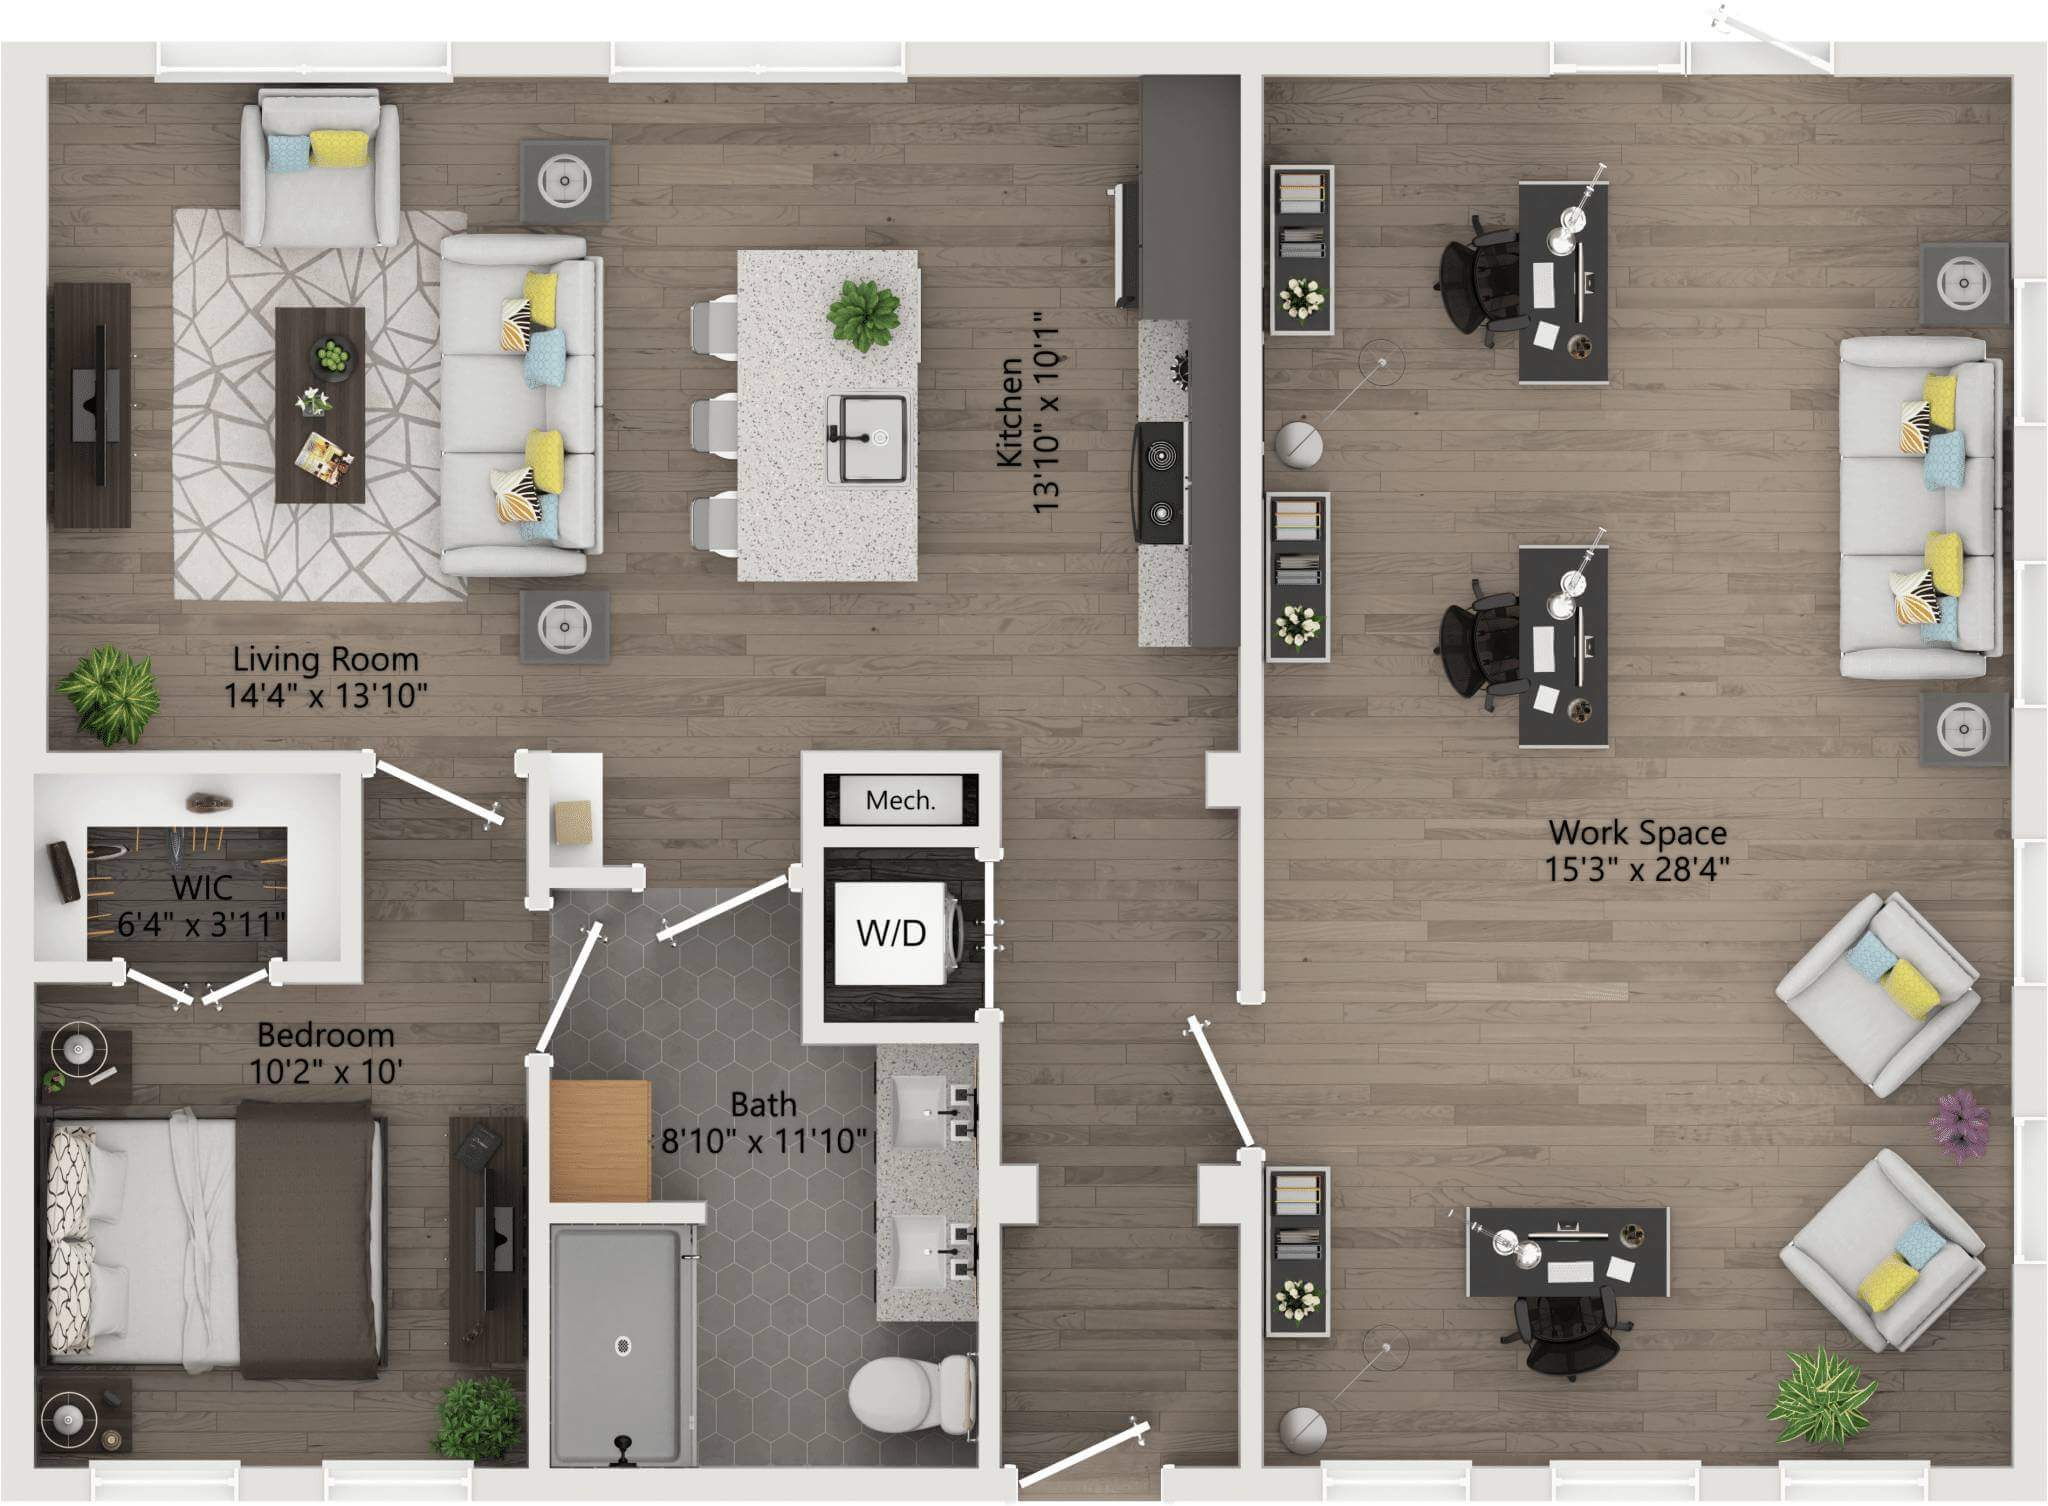 two Bedroom 1,120ft,141ft,patio